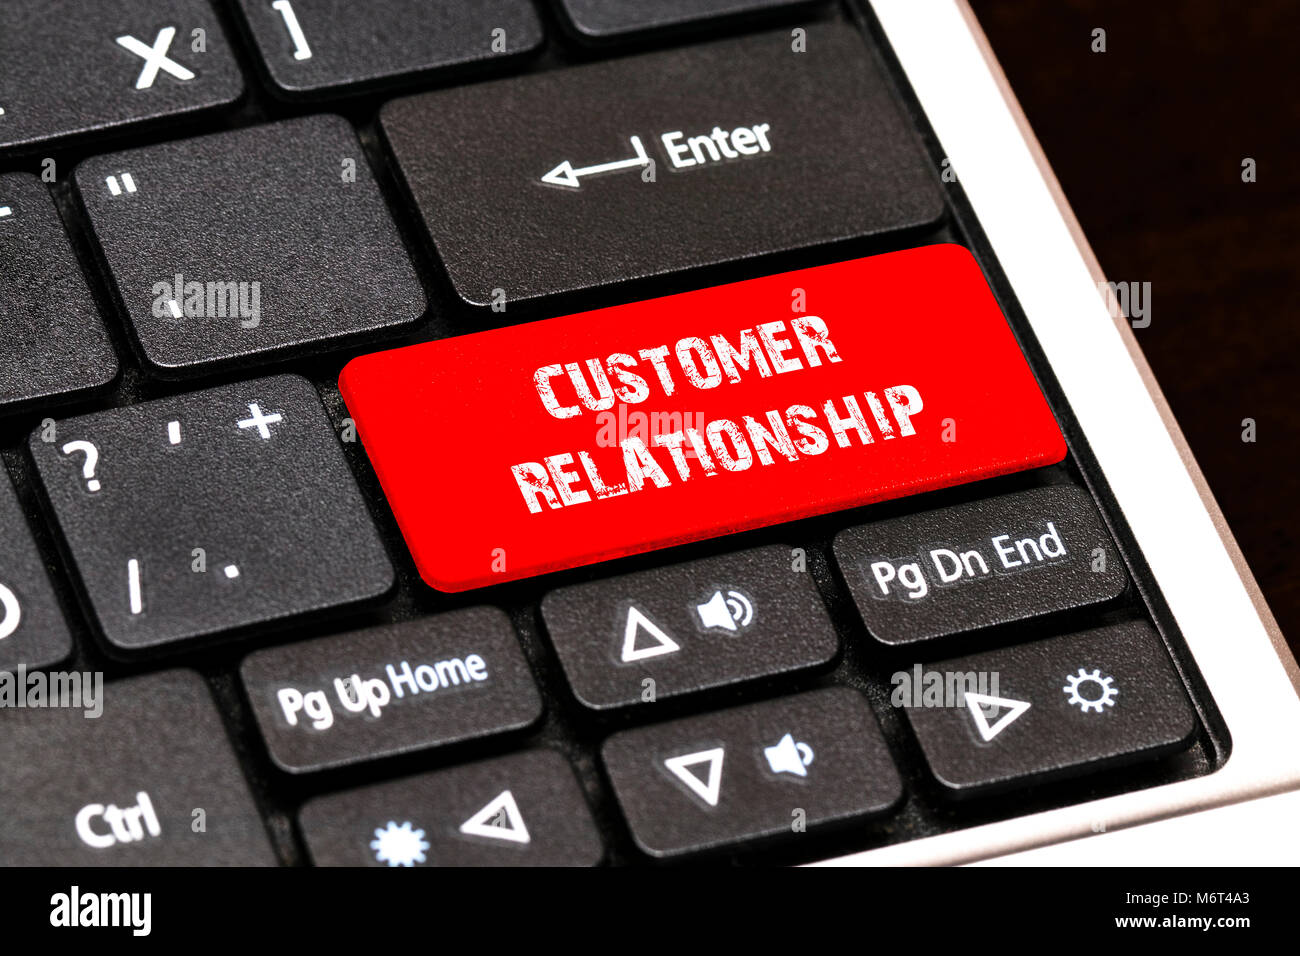 On the laptop keyboard the red button written CUSTOMER RELATIONSHIP. - Stock Image